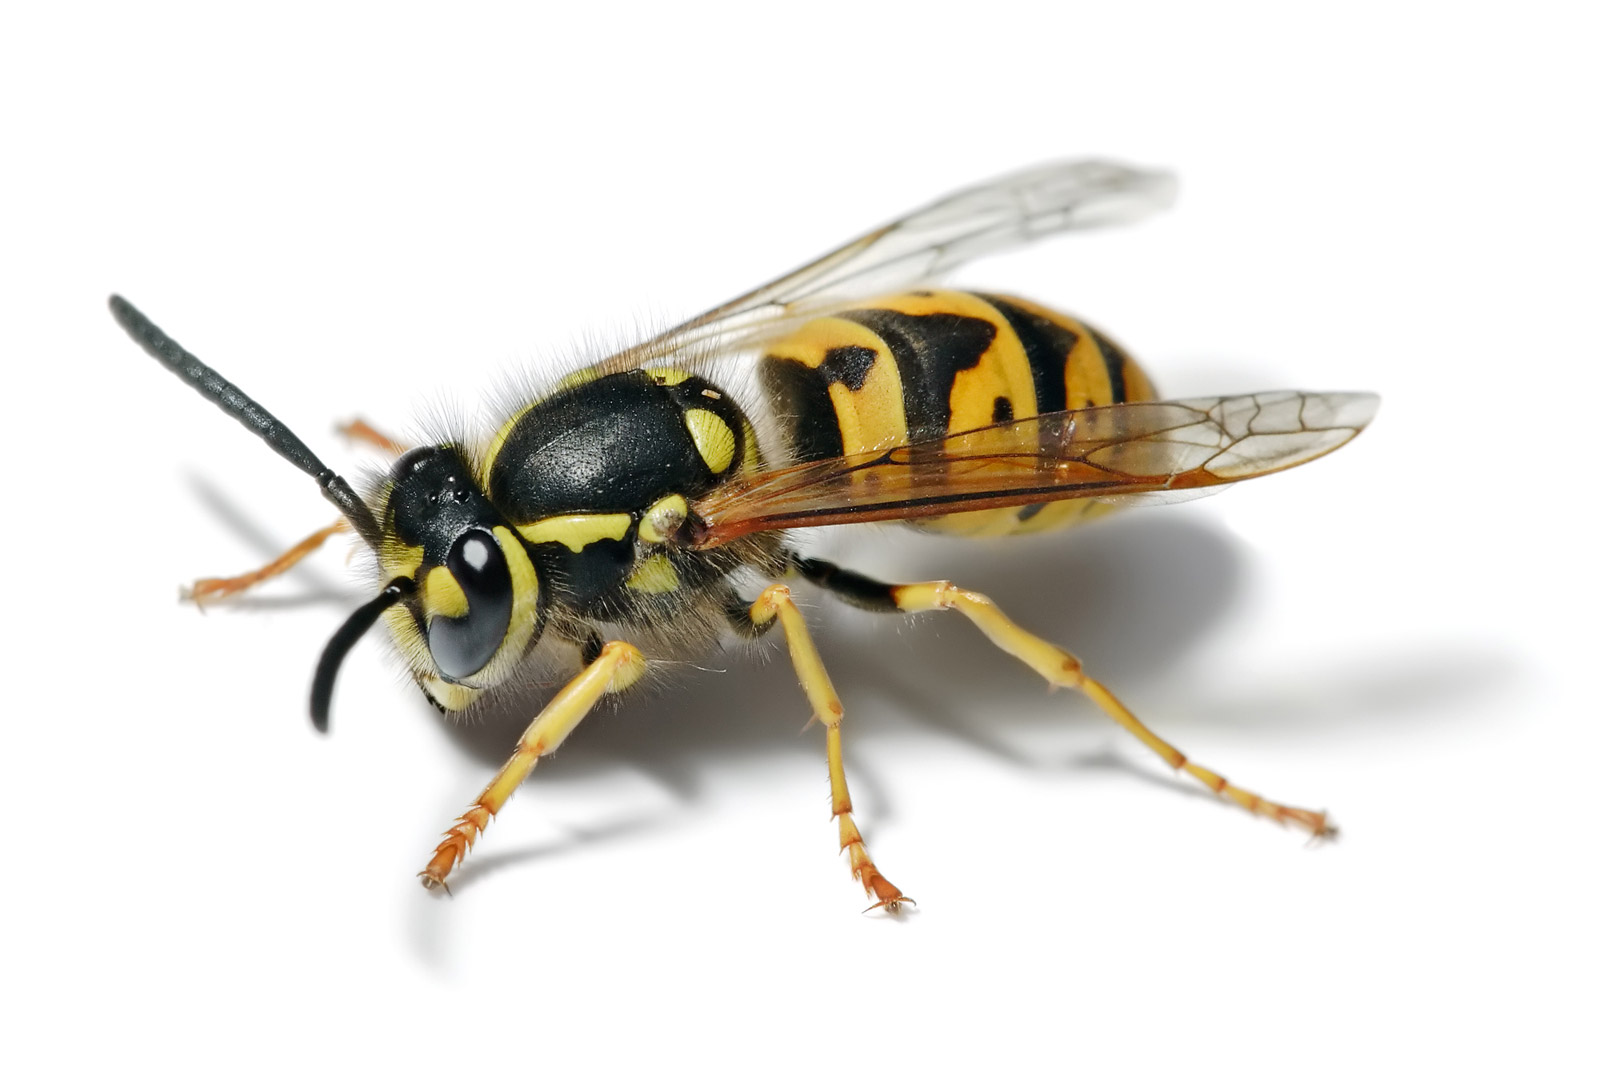 Yellowjacket Wikipedia